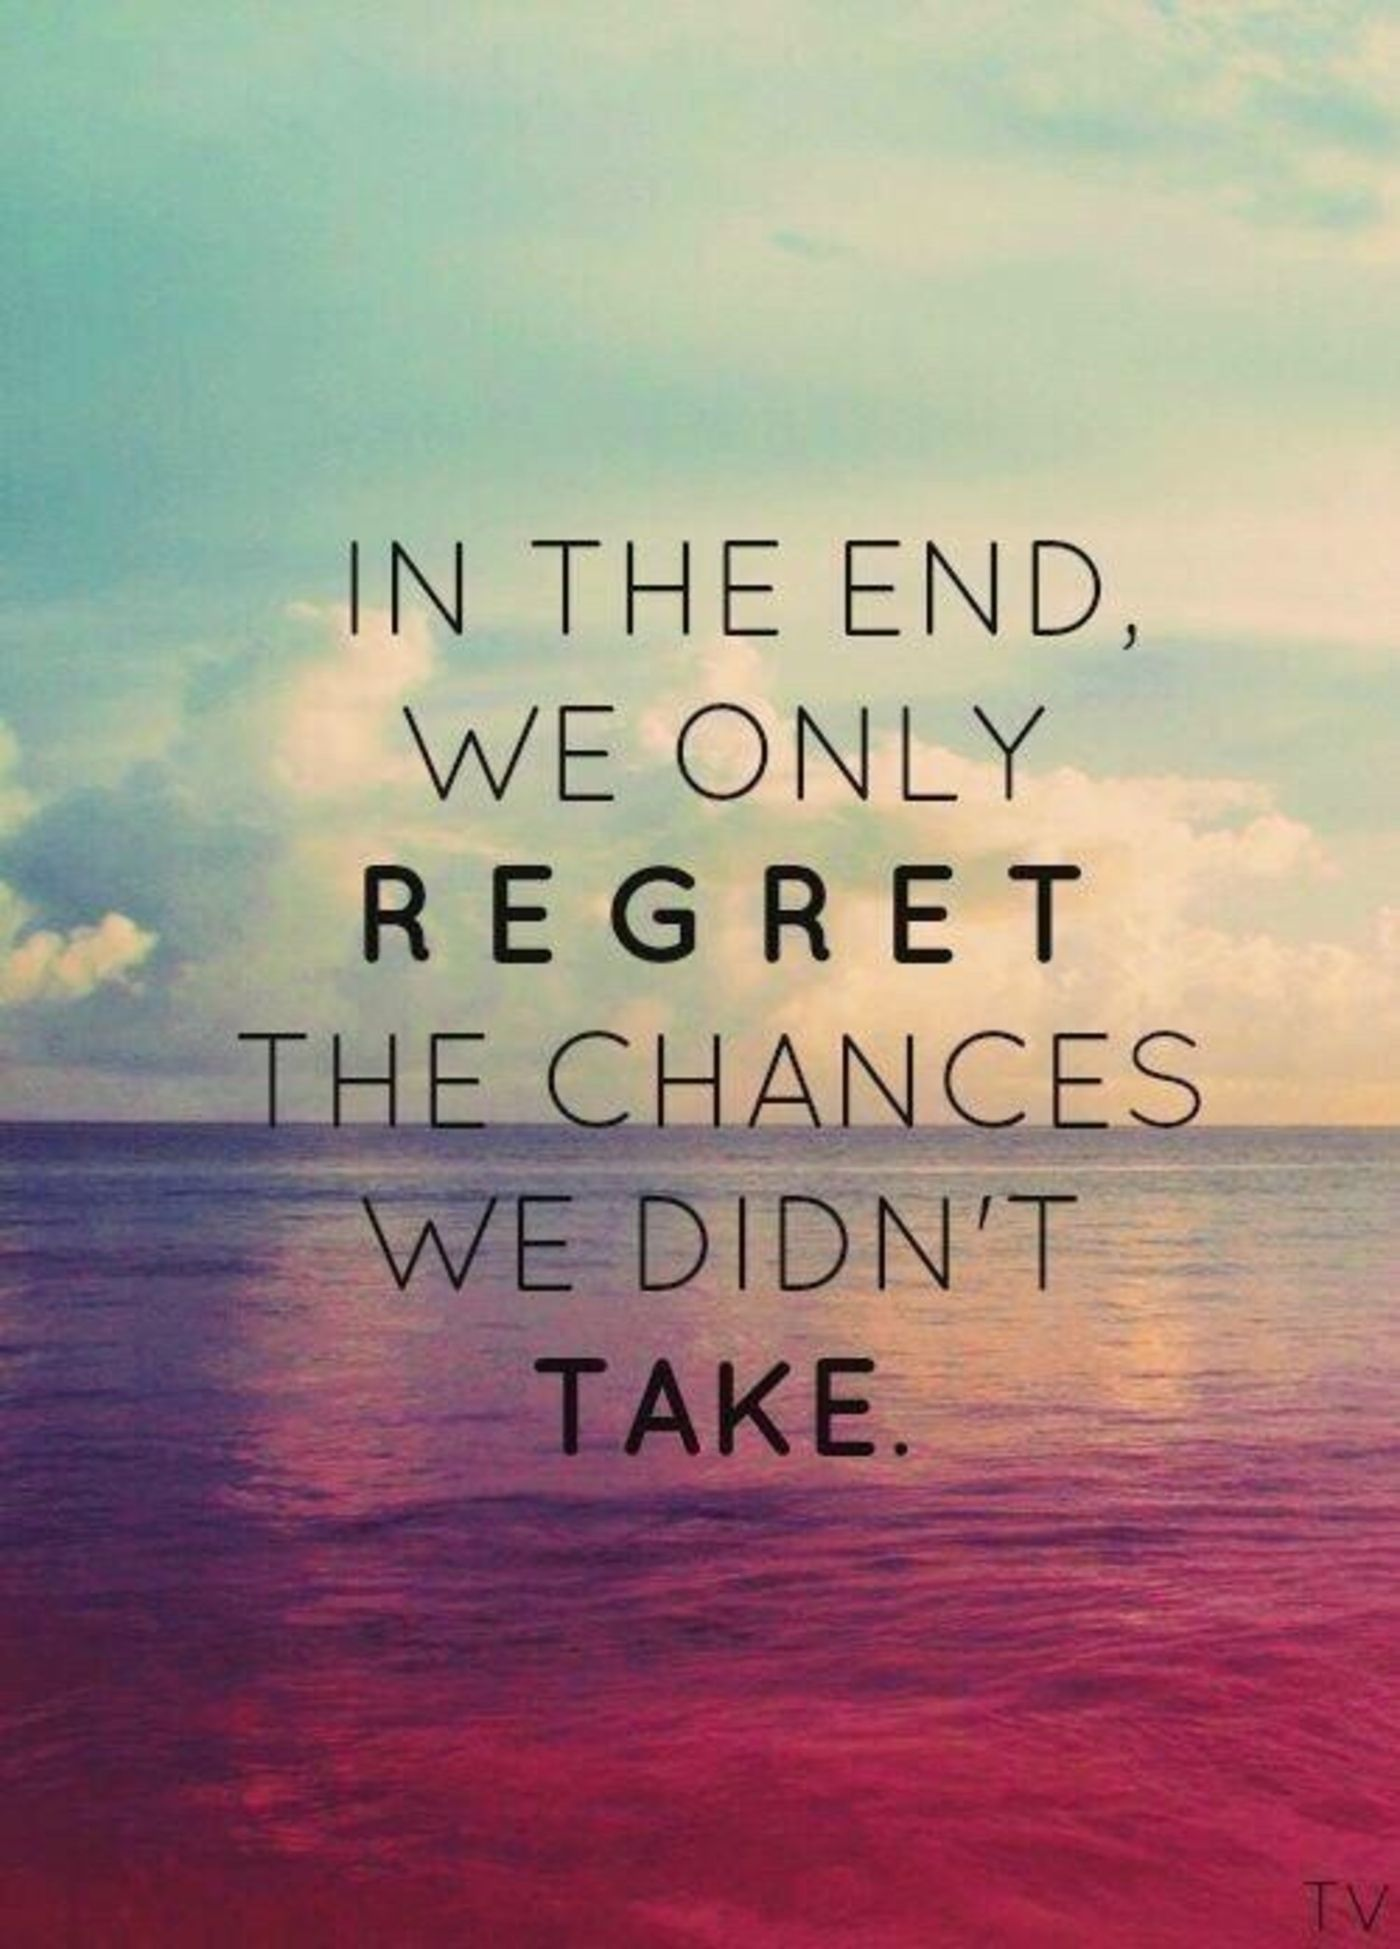 'In the end, we only regret the chances we didn't take.' #Quotation